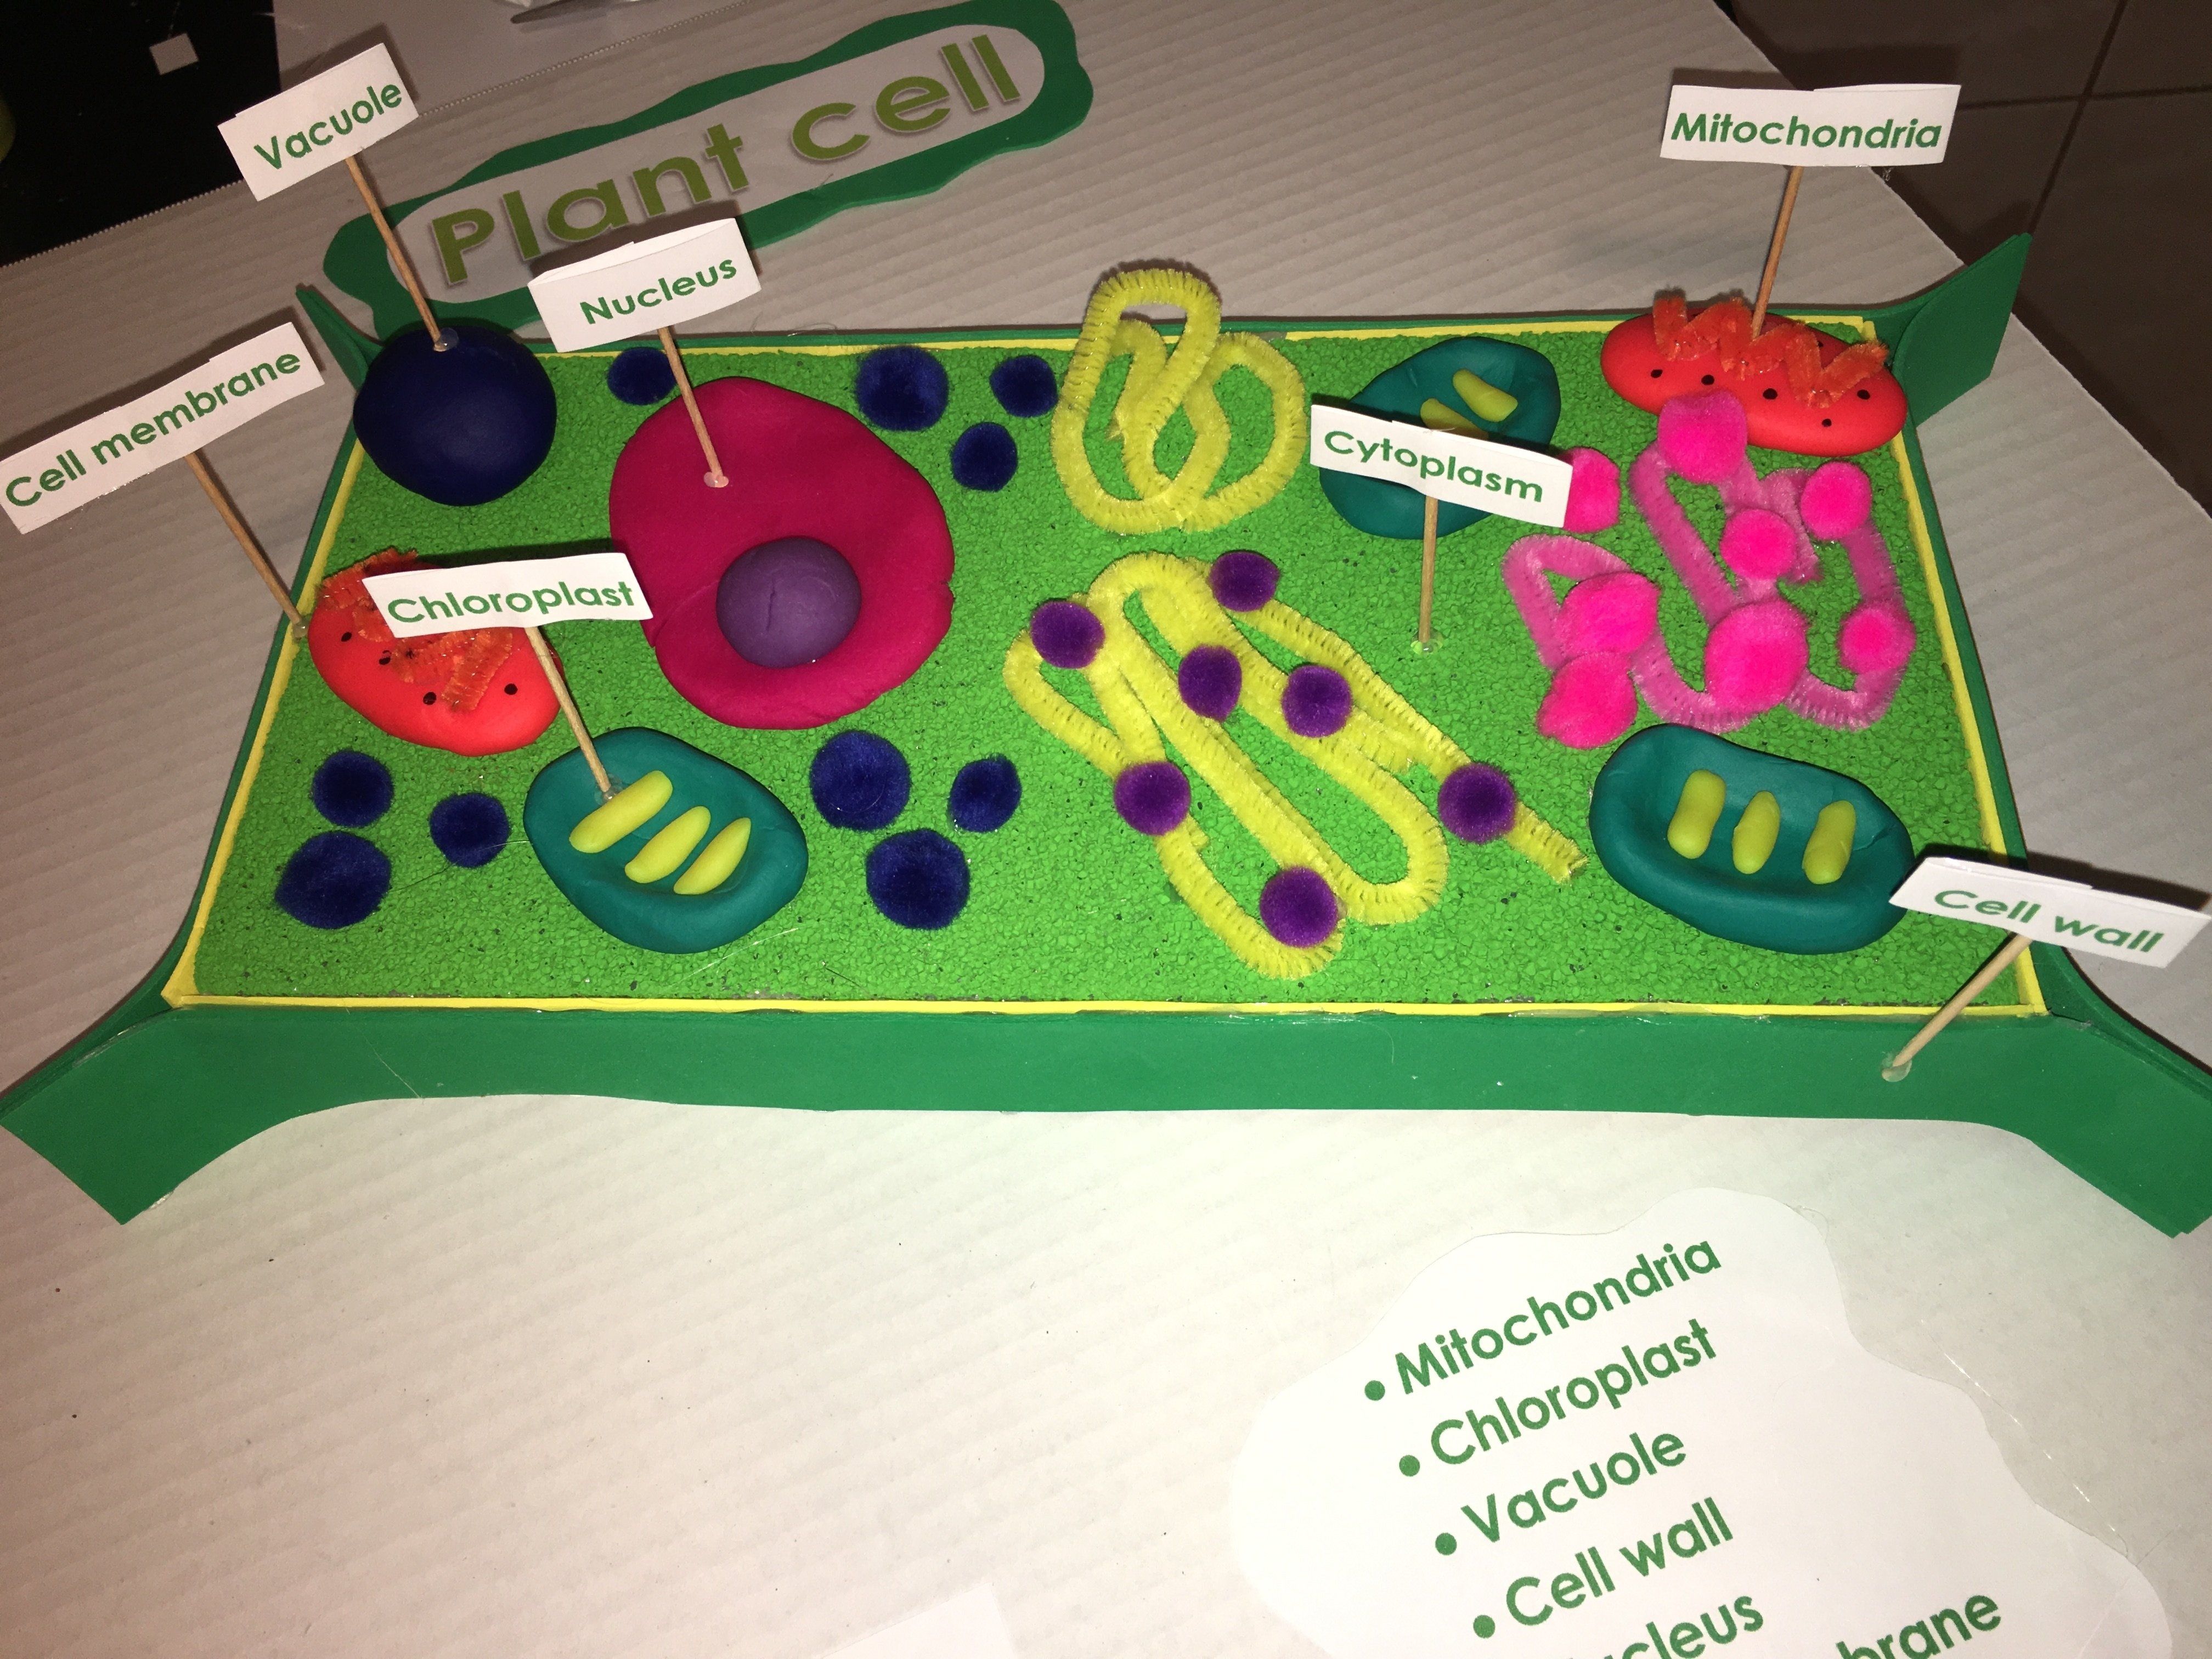 10 Pretty 3D Plant Cell Model Project Ideas 5th grade 3d plant cell model kids school projects pinterest 1 2020